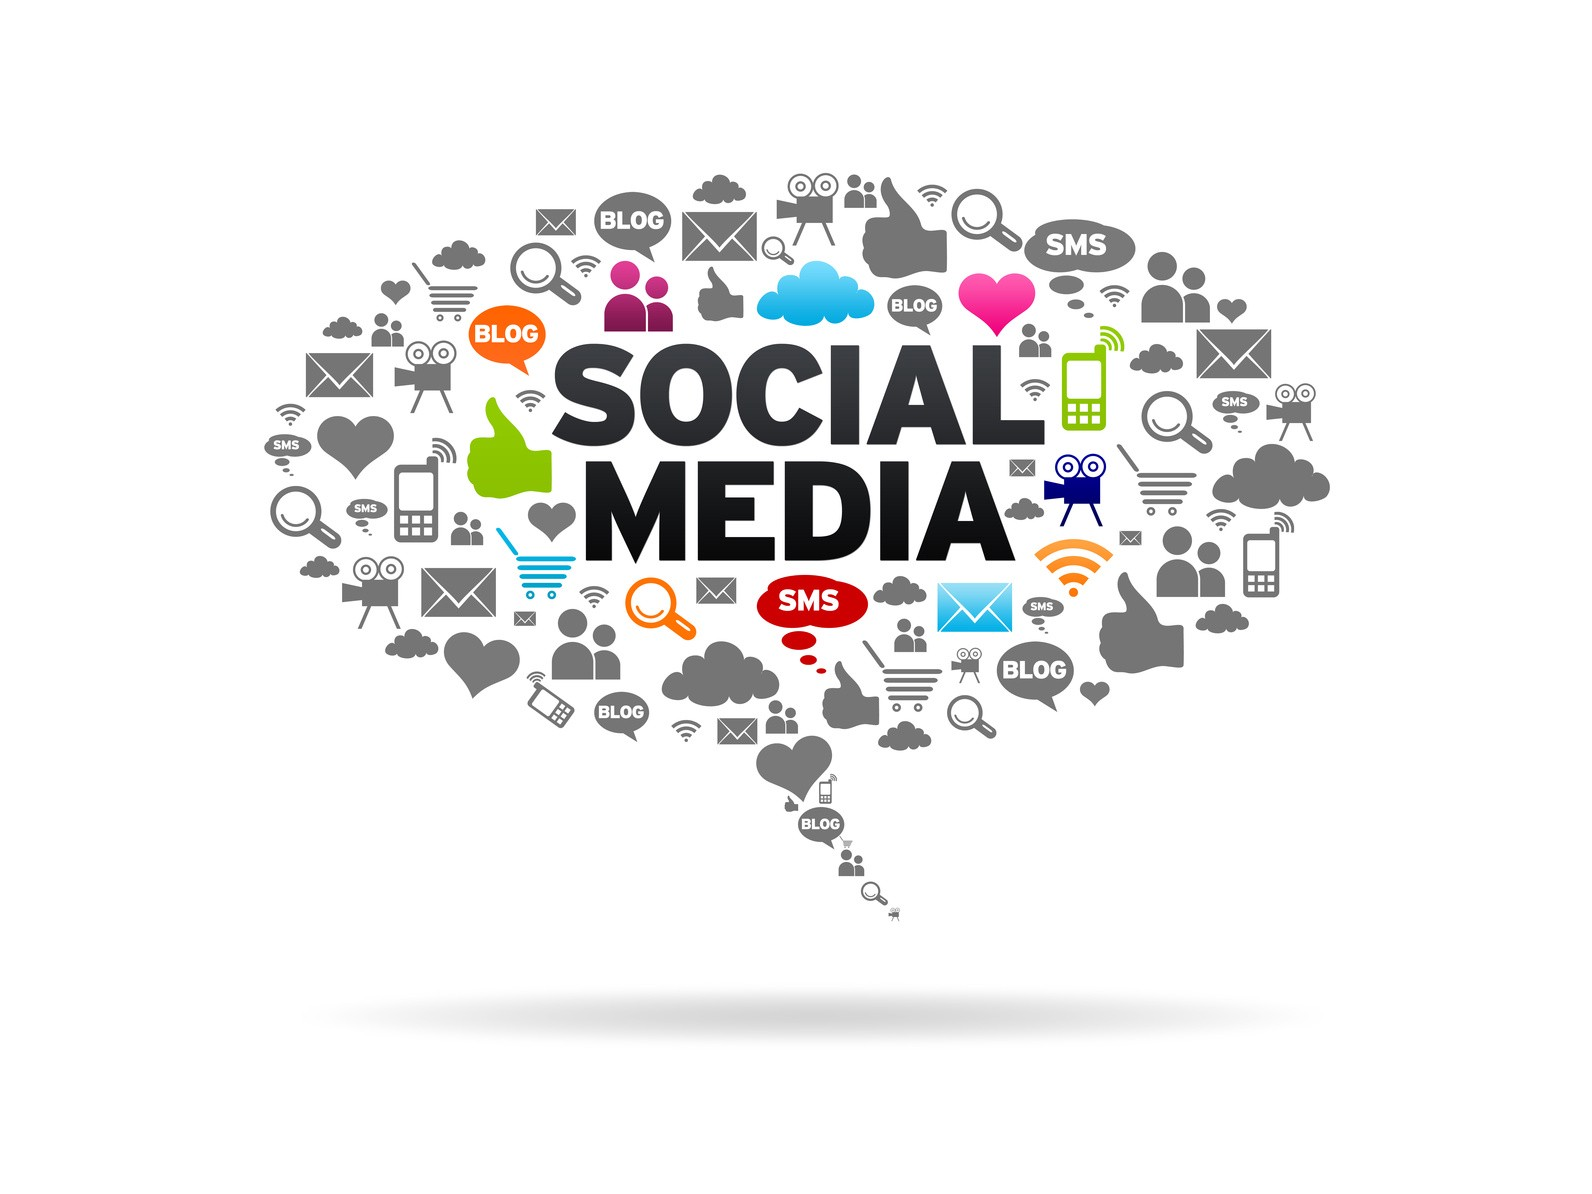 6 Ways to Boost Your Business With Social Media Marketing